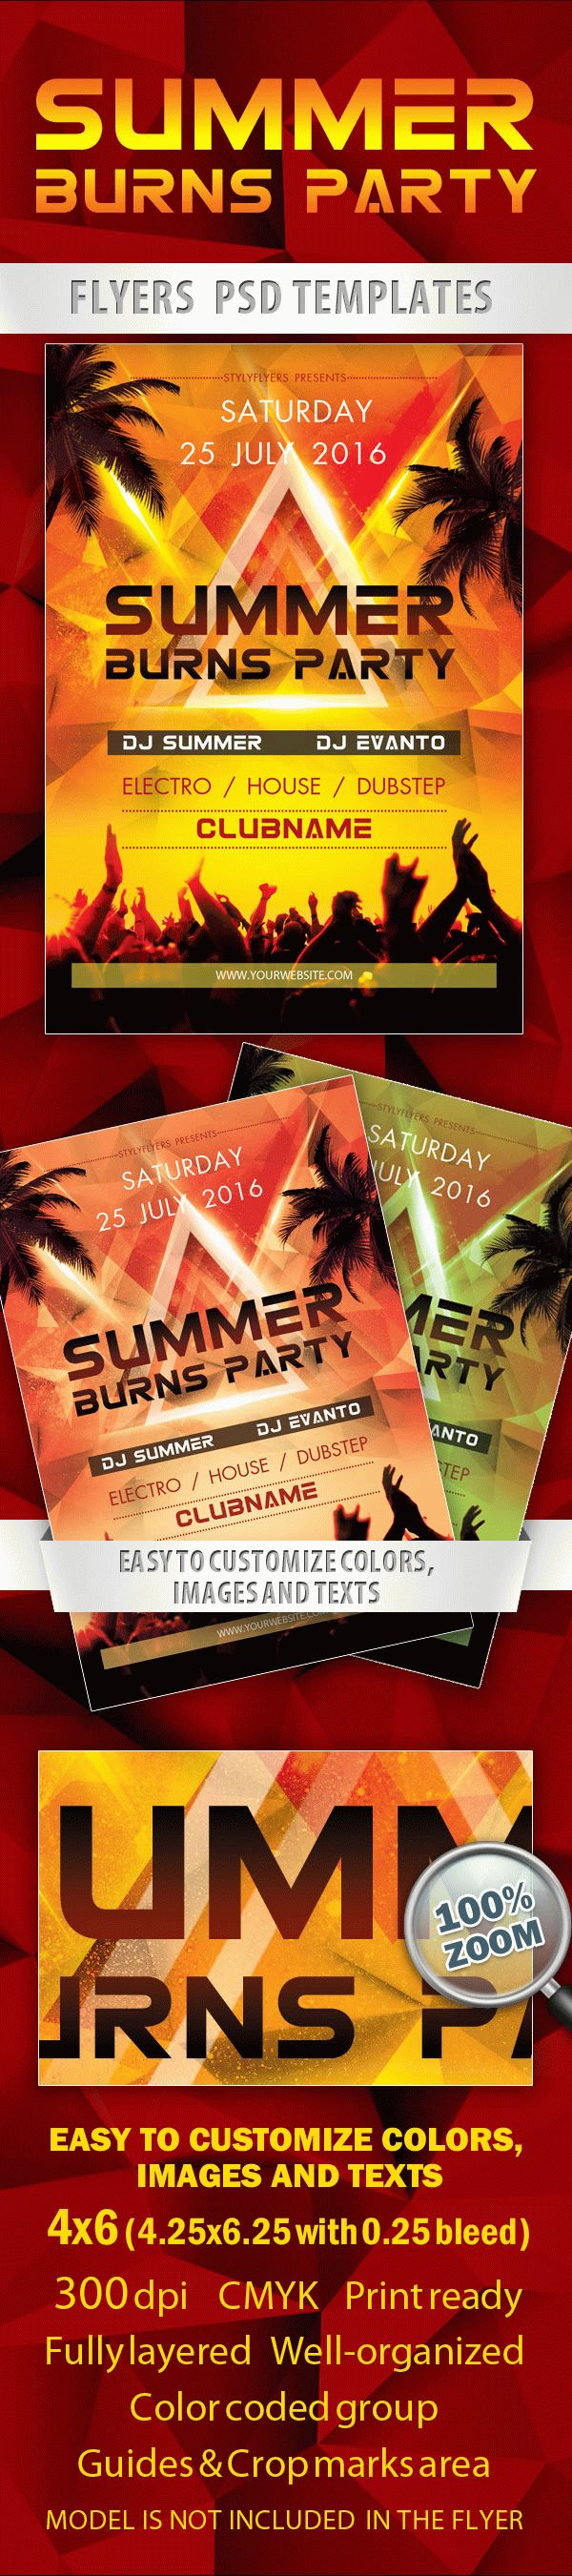 Summer Burns Party Flyer